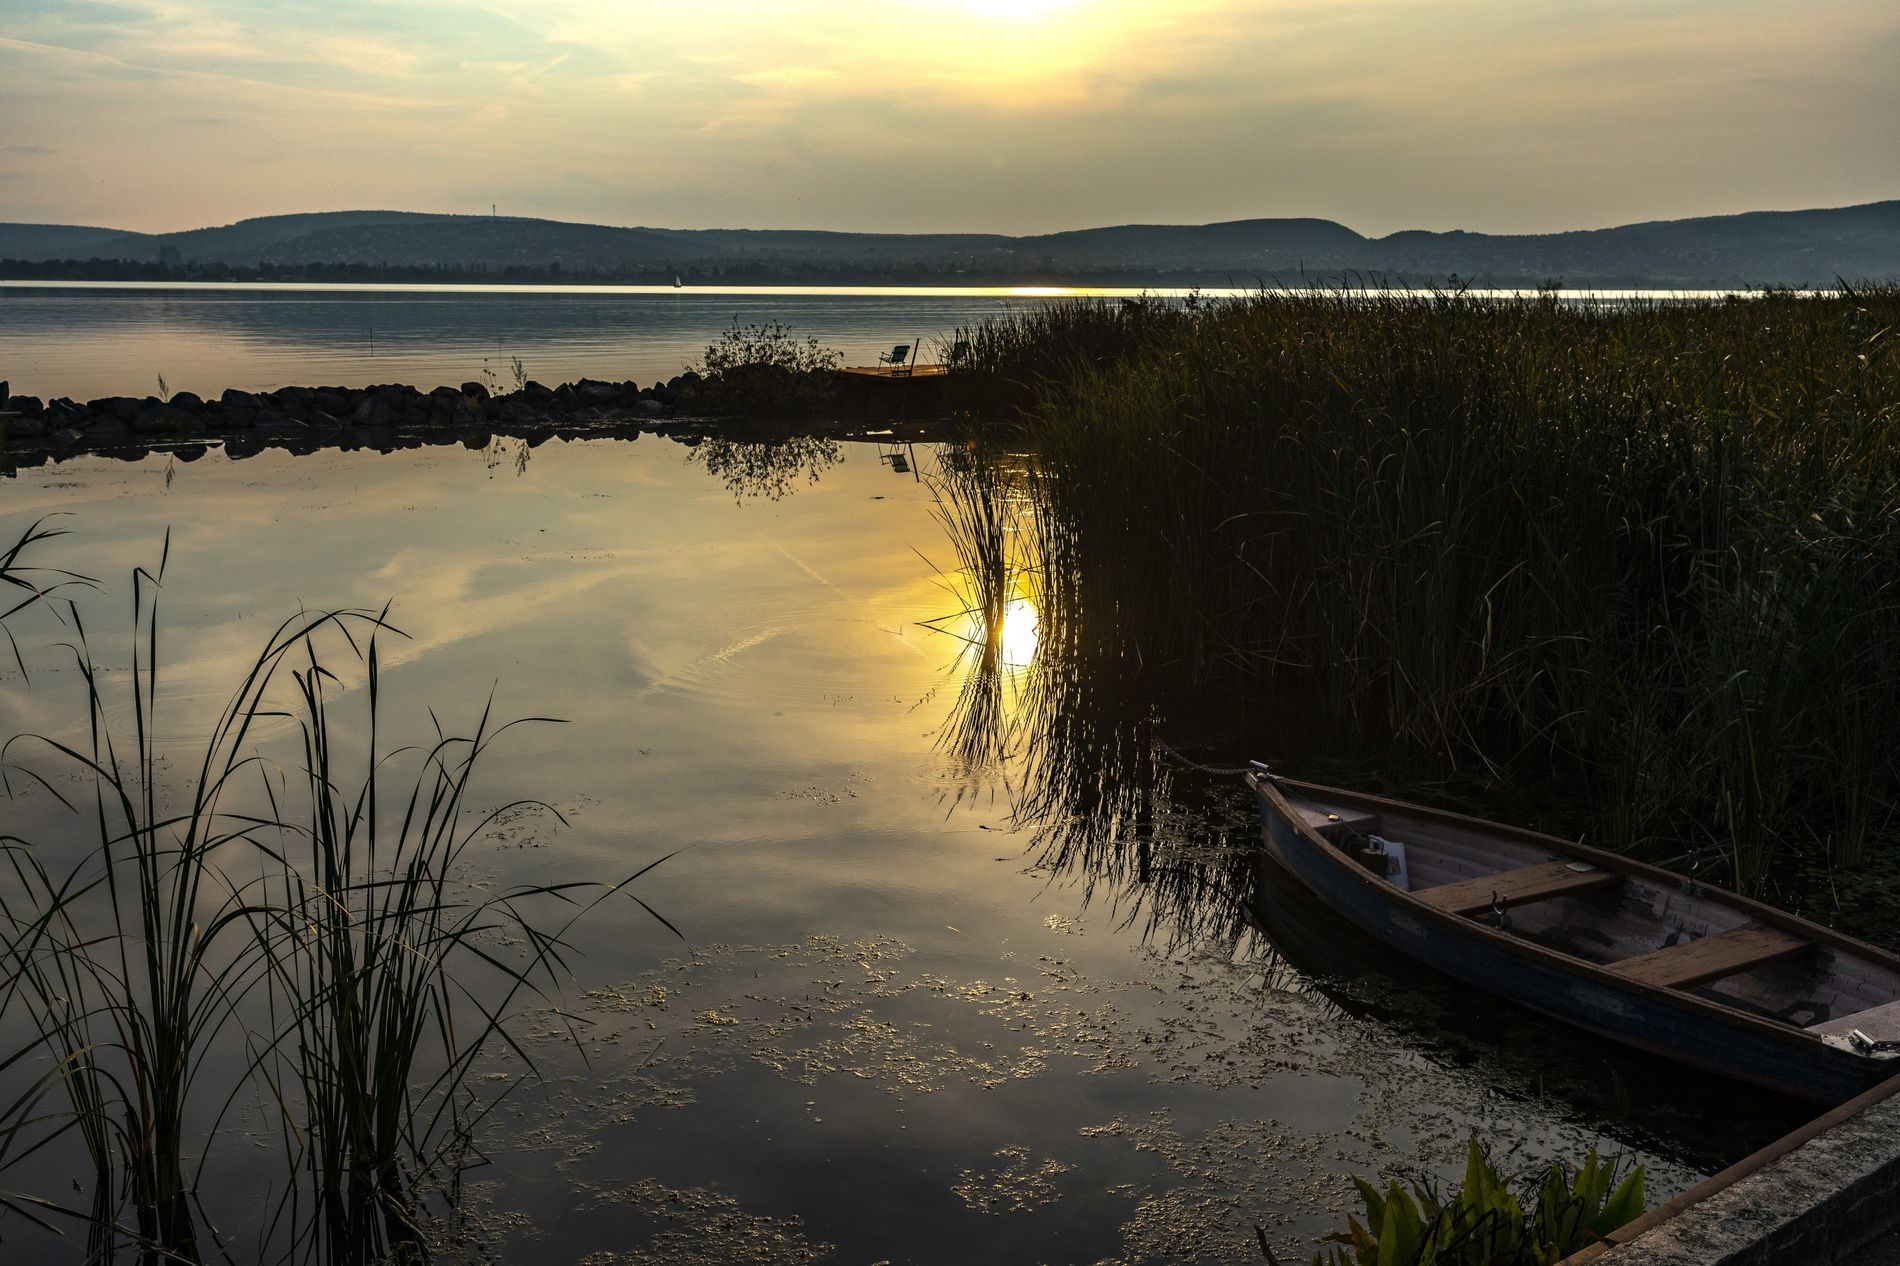 At Lake Balaton, a lone fisherman's boat is done for the day and docked by the ...